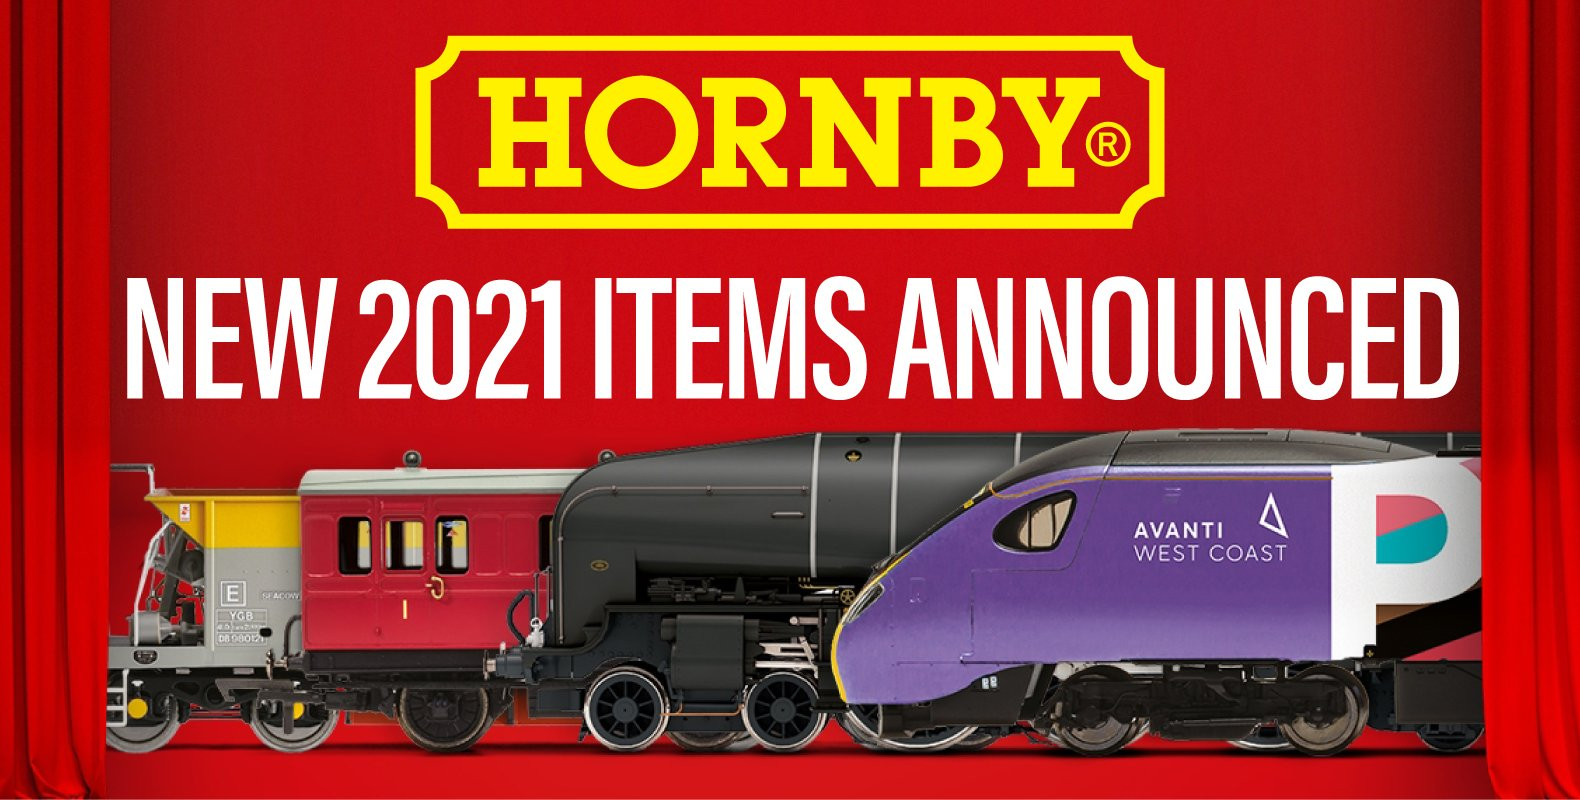 hornby new items 01.18.21